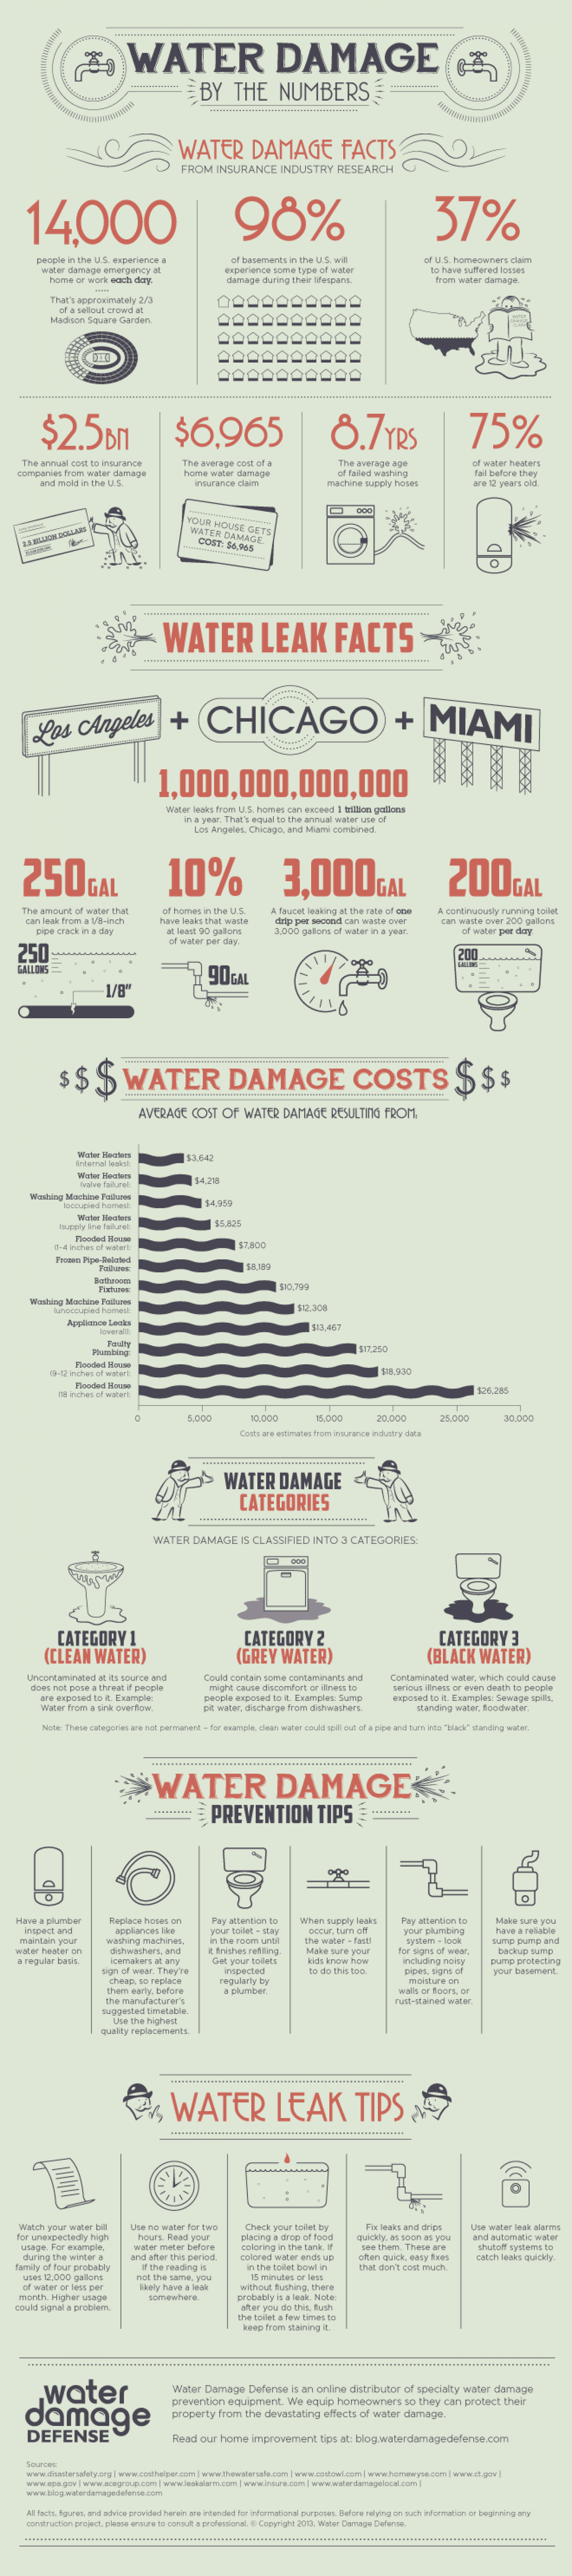 Water Damage By The Numbers Infographic